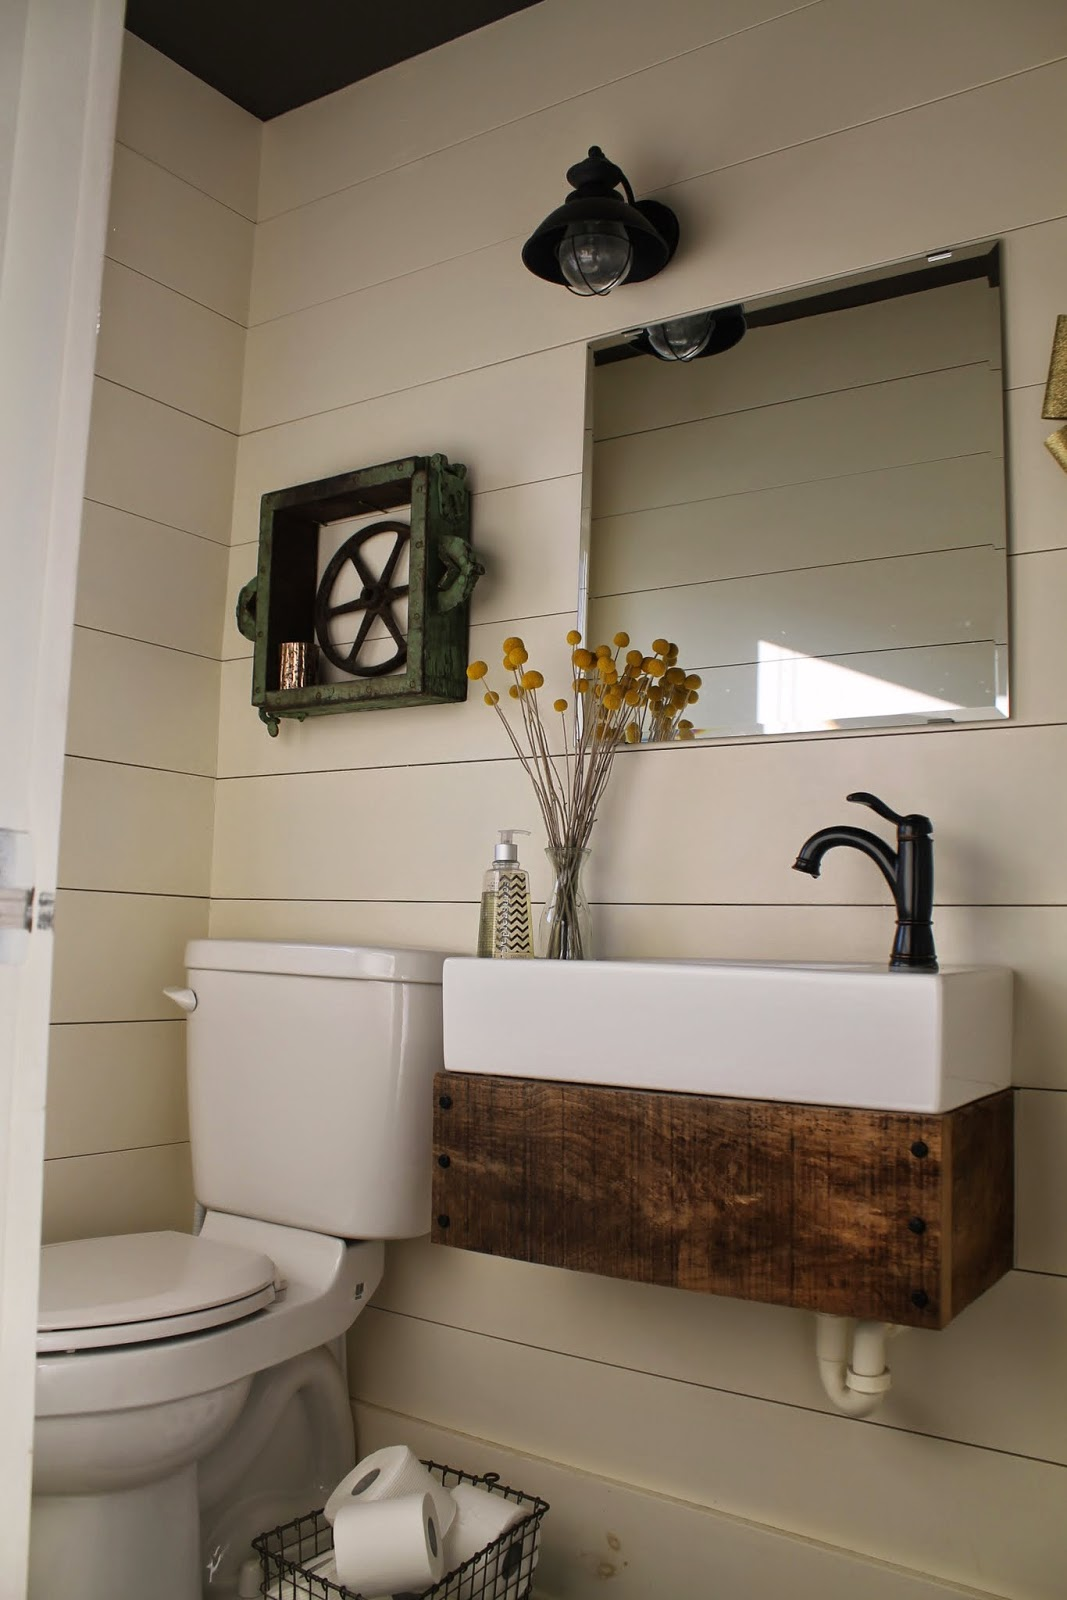 Rustic Reclaimed Wood Floating Vanity In Bathroom With Planked Walls   Girl  Meets Carpenter Featured On